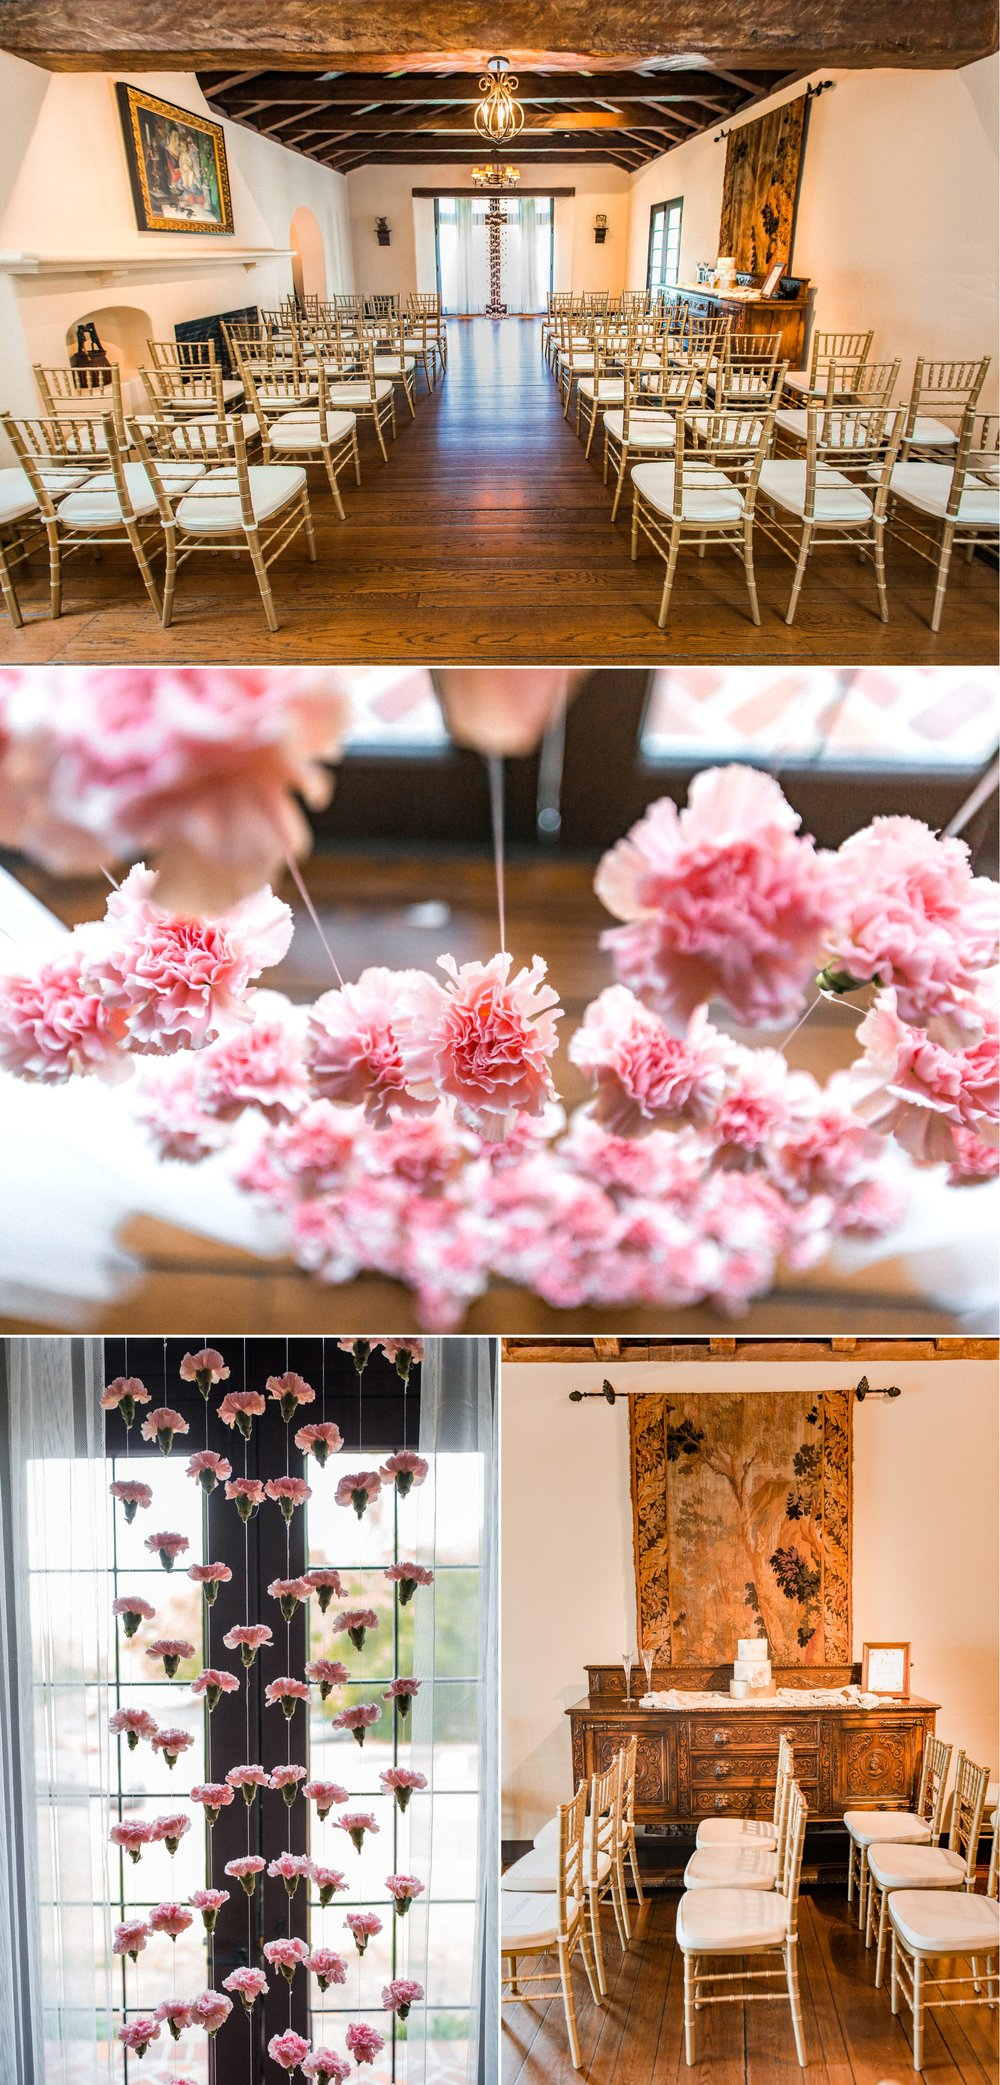 Casa Feliz indoor wedding ceremony with pink carnation floral garlands, gold chiavari chairs, wooden floors, and Spanish farmhouse historic architecture | Photography: Shaina DeCiryan